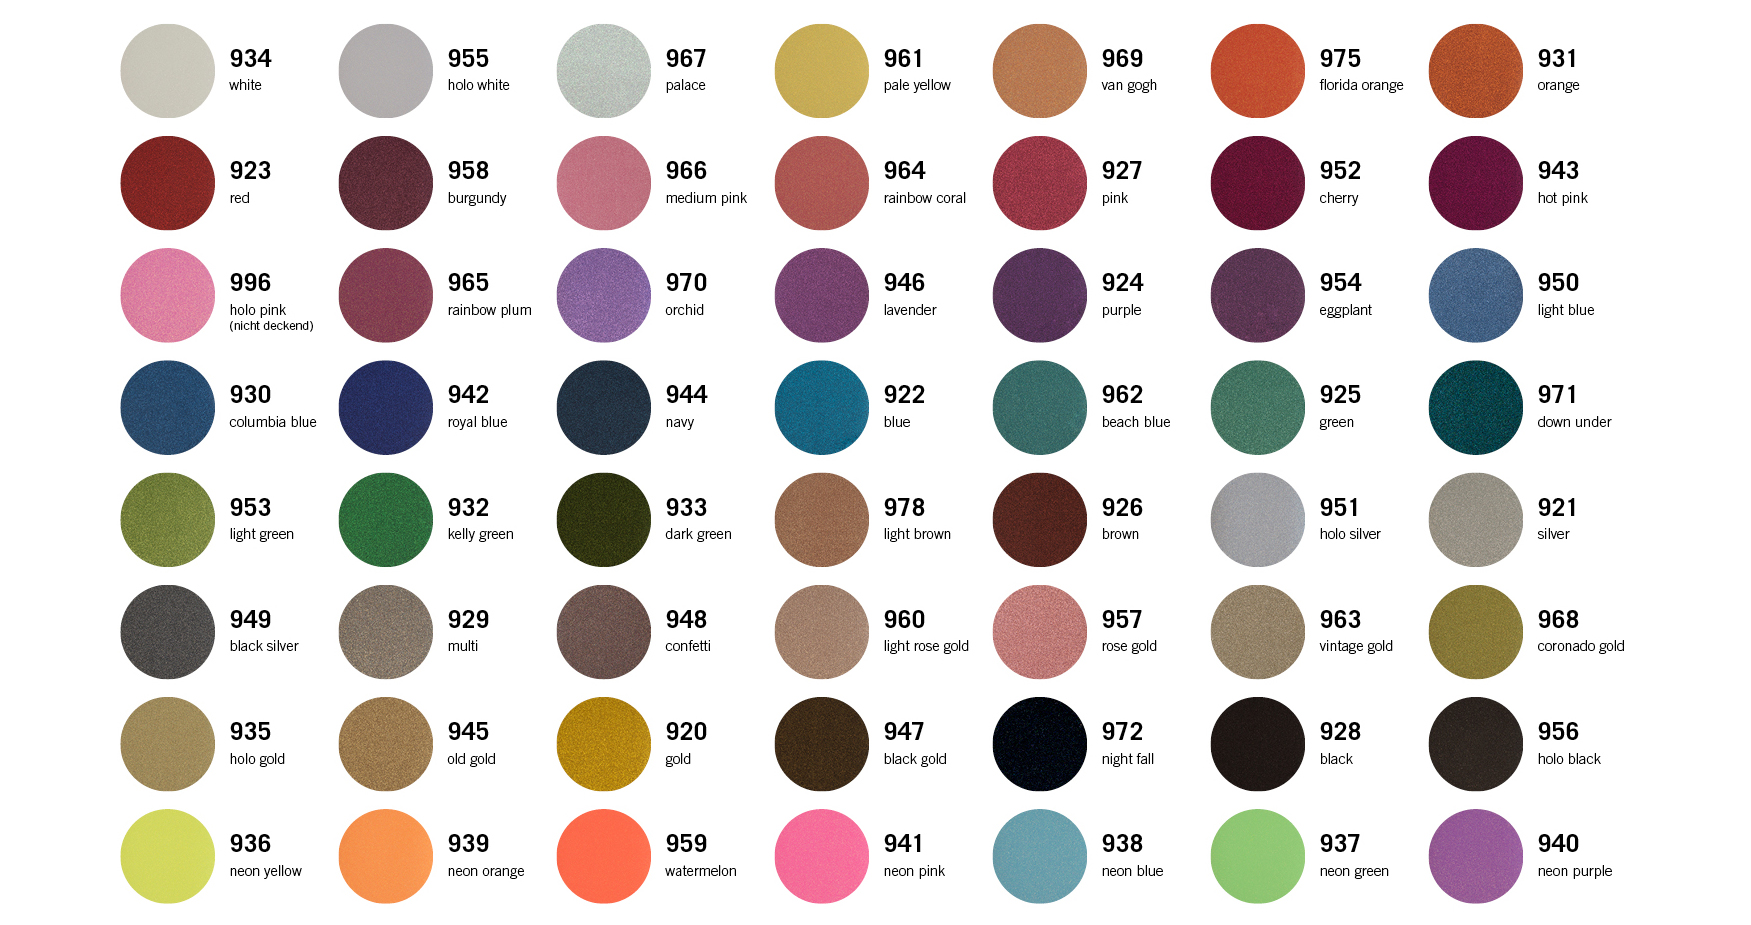 CAD-CUT_Farbauswahl-Color-selection_Stahls-Europe_Glitter_05-21